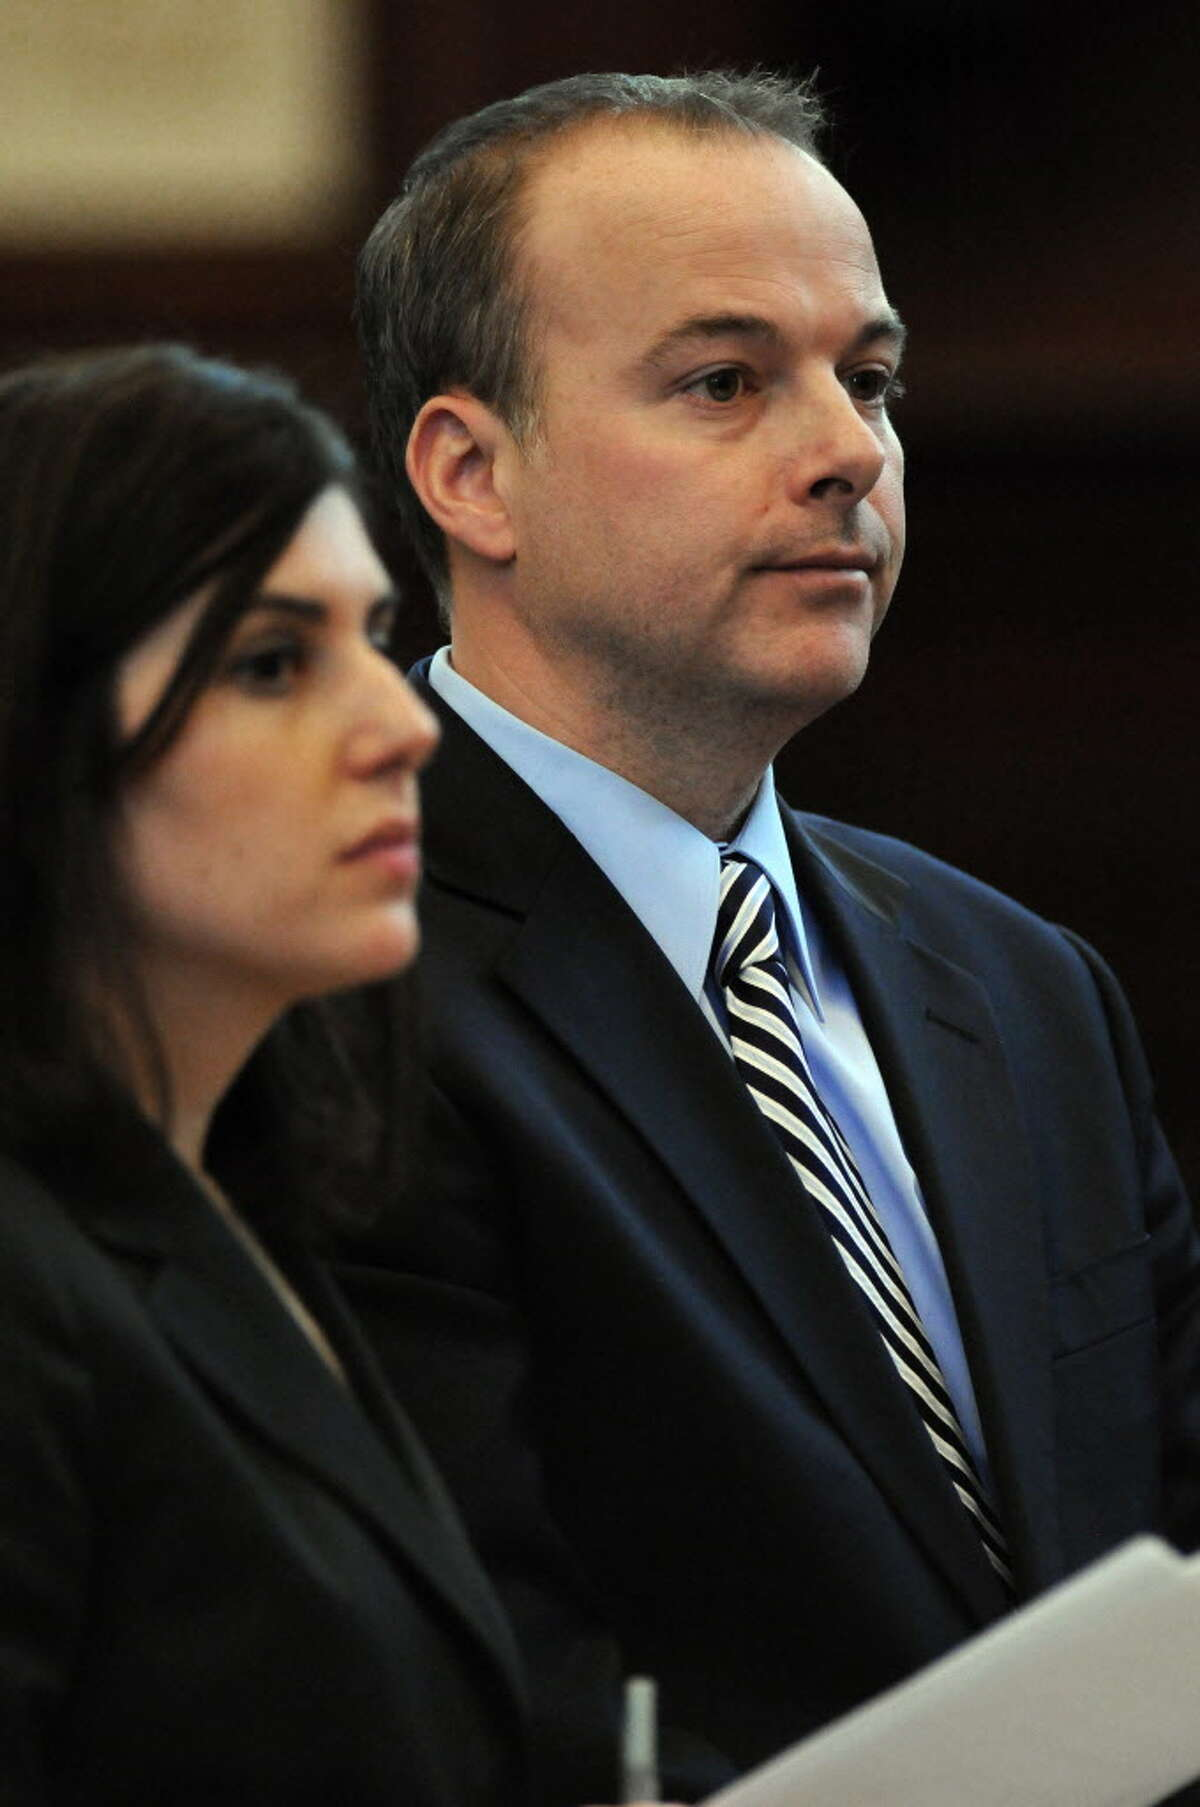 John Brown pleads guilty to possession of a forged instrument, for his role in a ballot fraud case in Rensselaer County Court on Tuesday Dec. 20, 2011 in Troy, N.Y. (Philip Kamrass / Times Union archive )